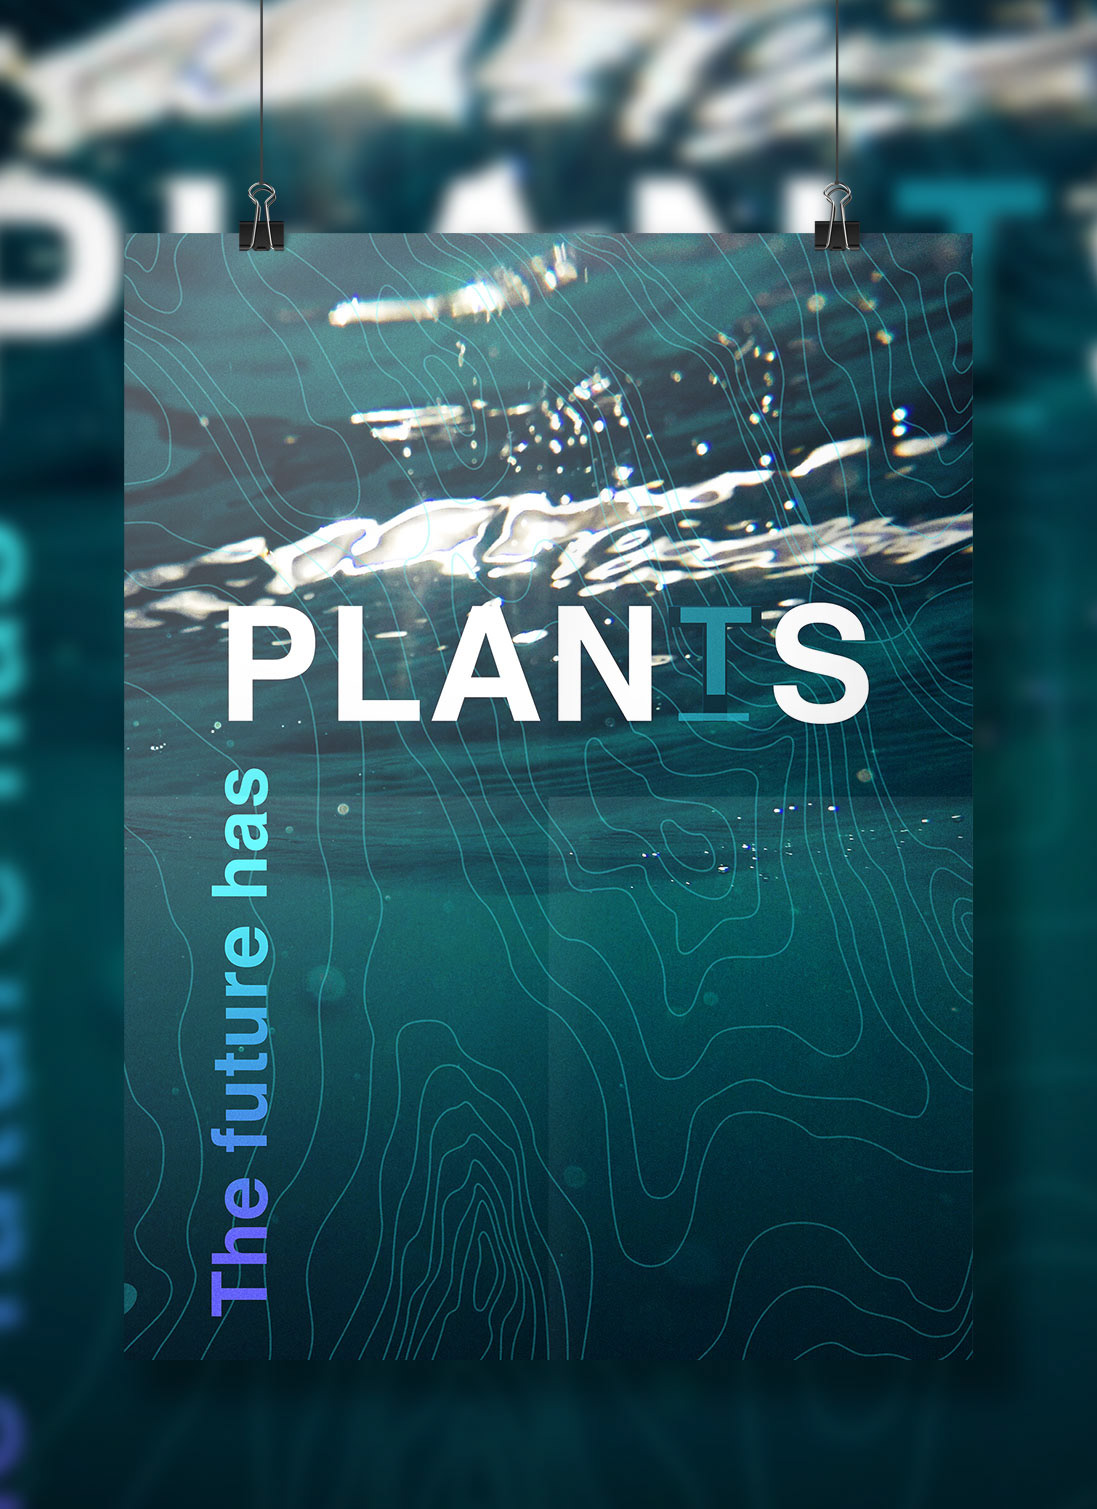 plants project is an environmental awareness campaign provoking the public through a series of poster designs to raise awareness of sea levels rising